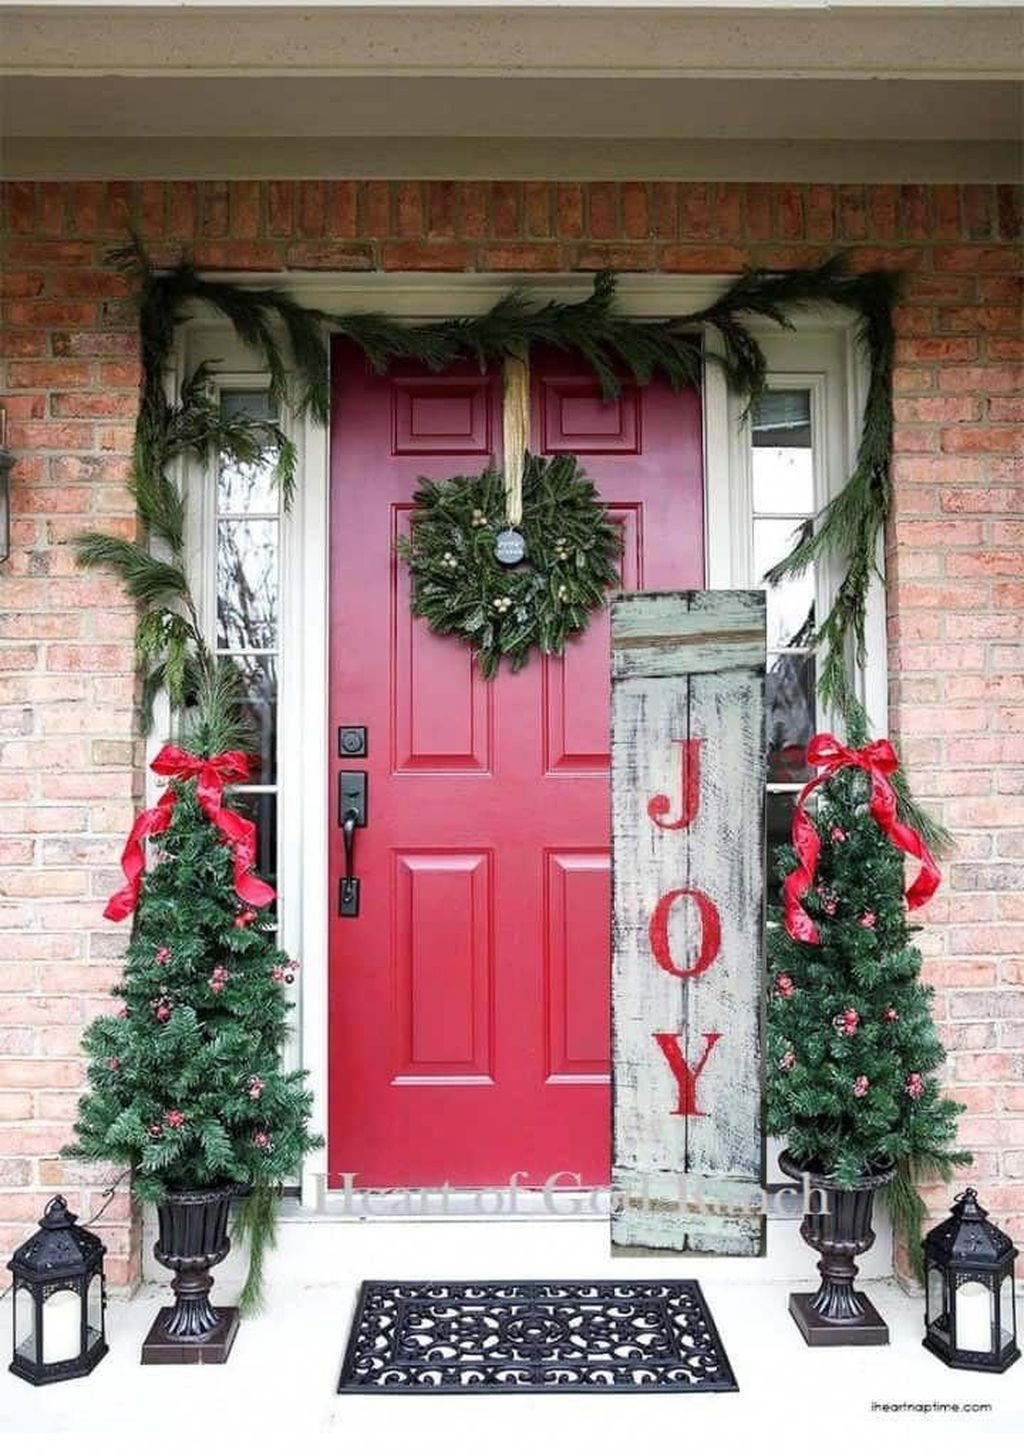 The Best Christmas Lanterns Outdoor Ideas Best For Front Porches 23